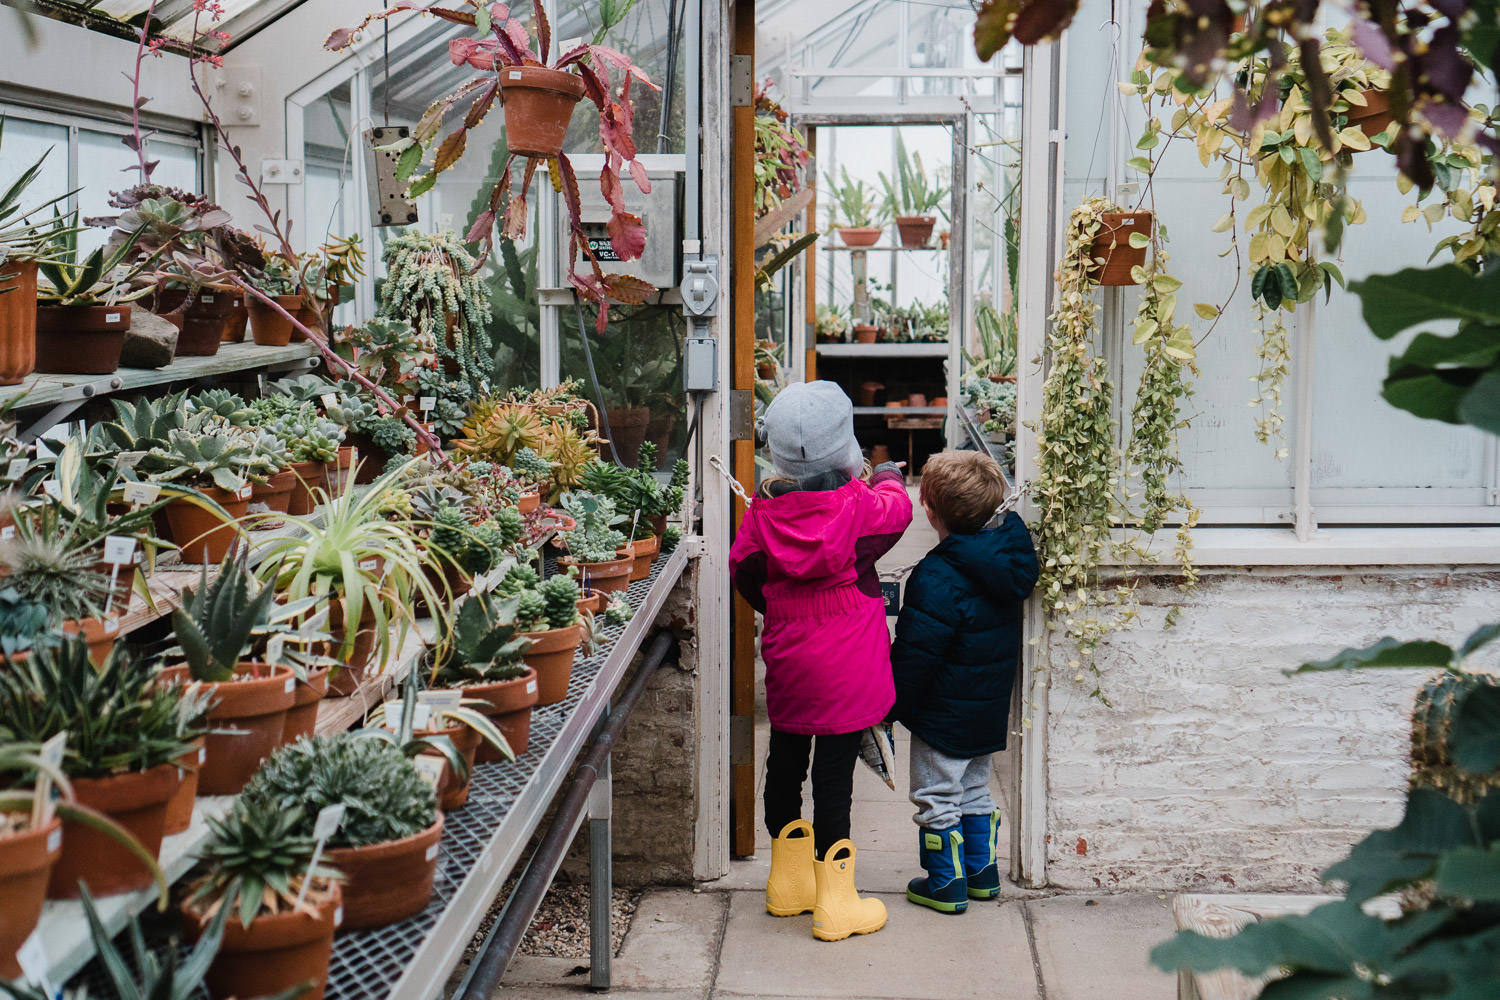 Kids look at the plants in the greenhouse at Planting Fields.